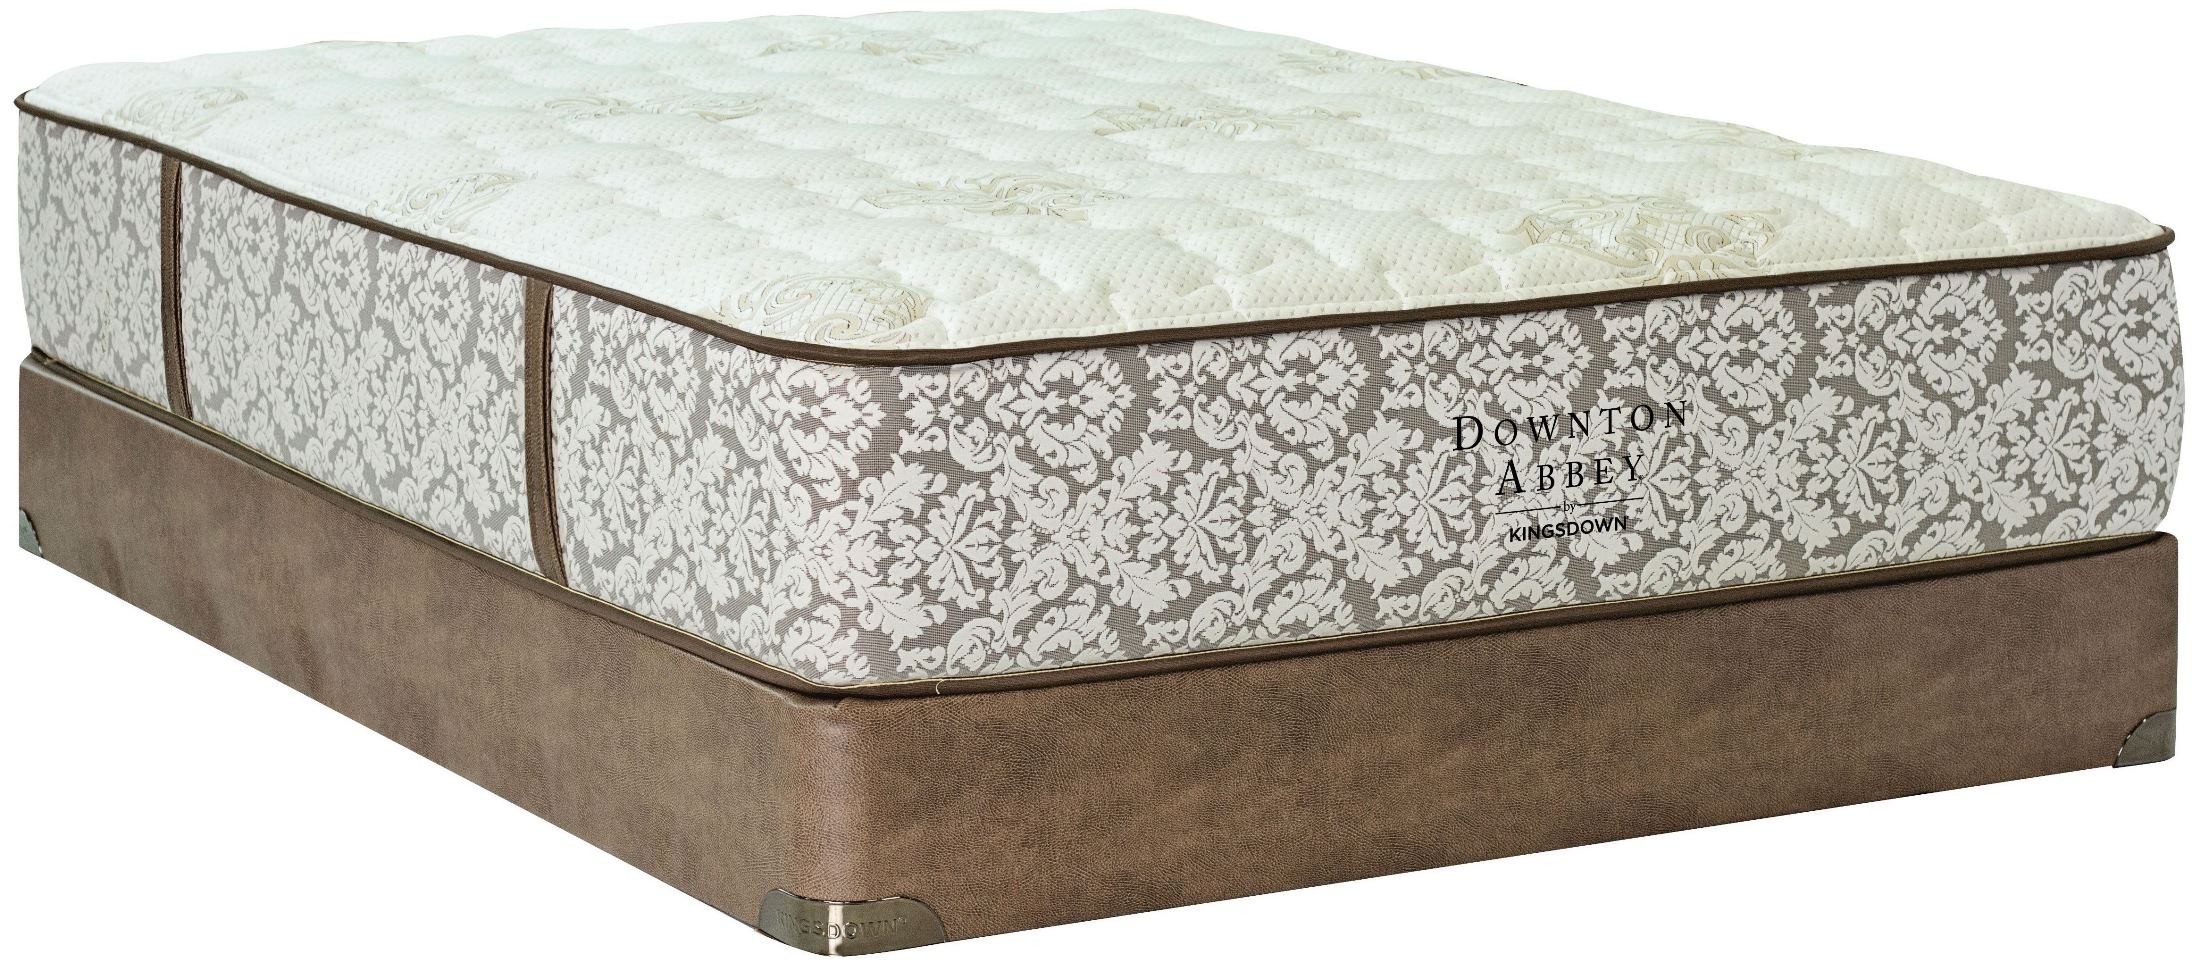 Downton Abbey Edwardian Lace V Luxury Cal King Mattress With Foundation From Kingsdown